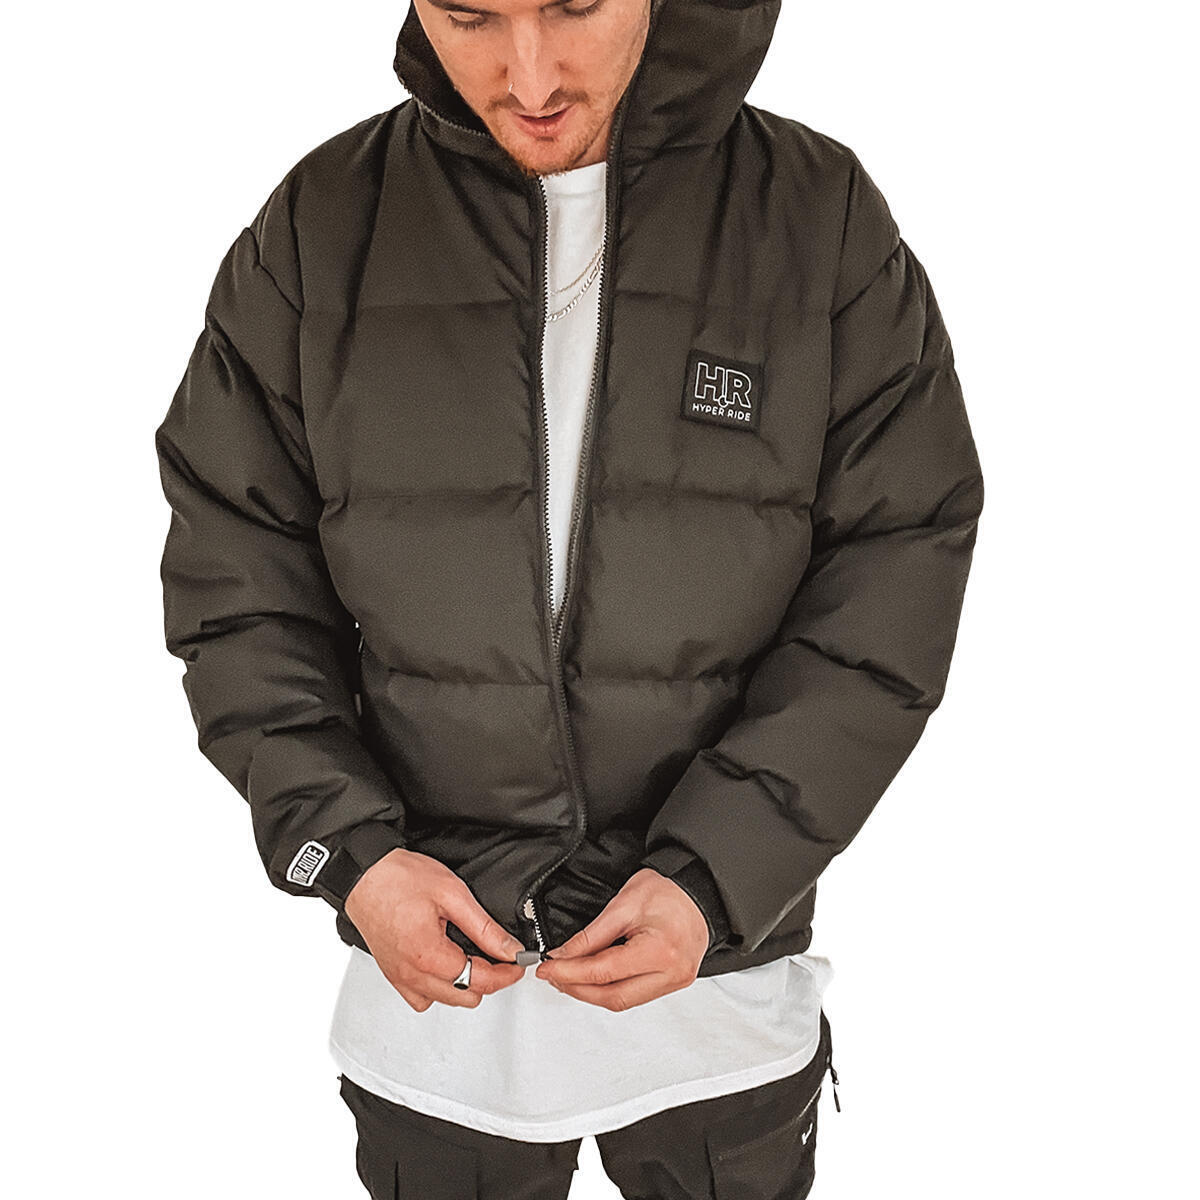 FREE HYPER RIDE PUFFER JACKET WITH EVERY SET OF ALLOY WHEELS